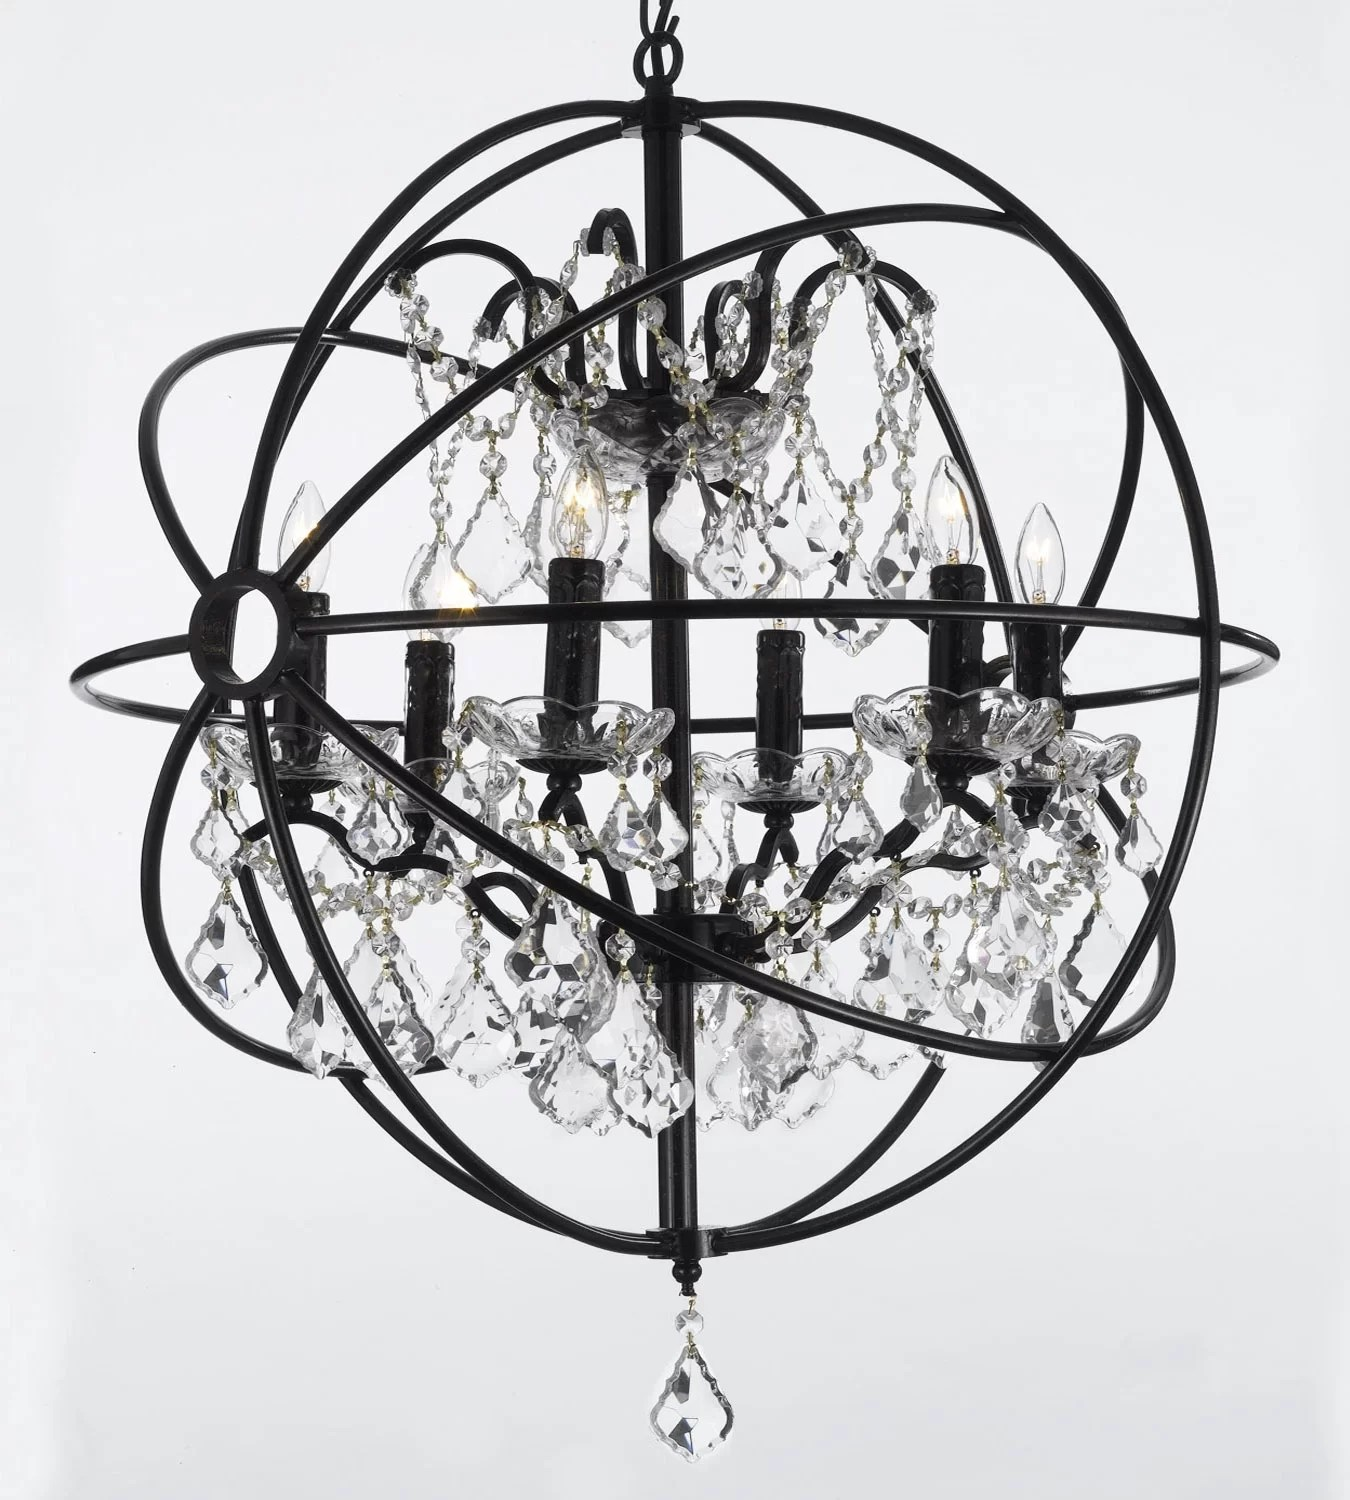 Black Wrought Iron Kitchen Light Fixtures Calderdale Orb 6 Light Led Globe Chandelier